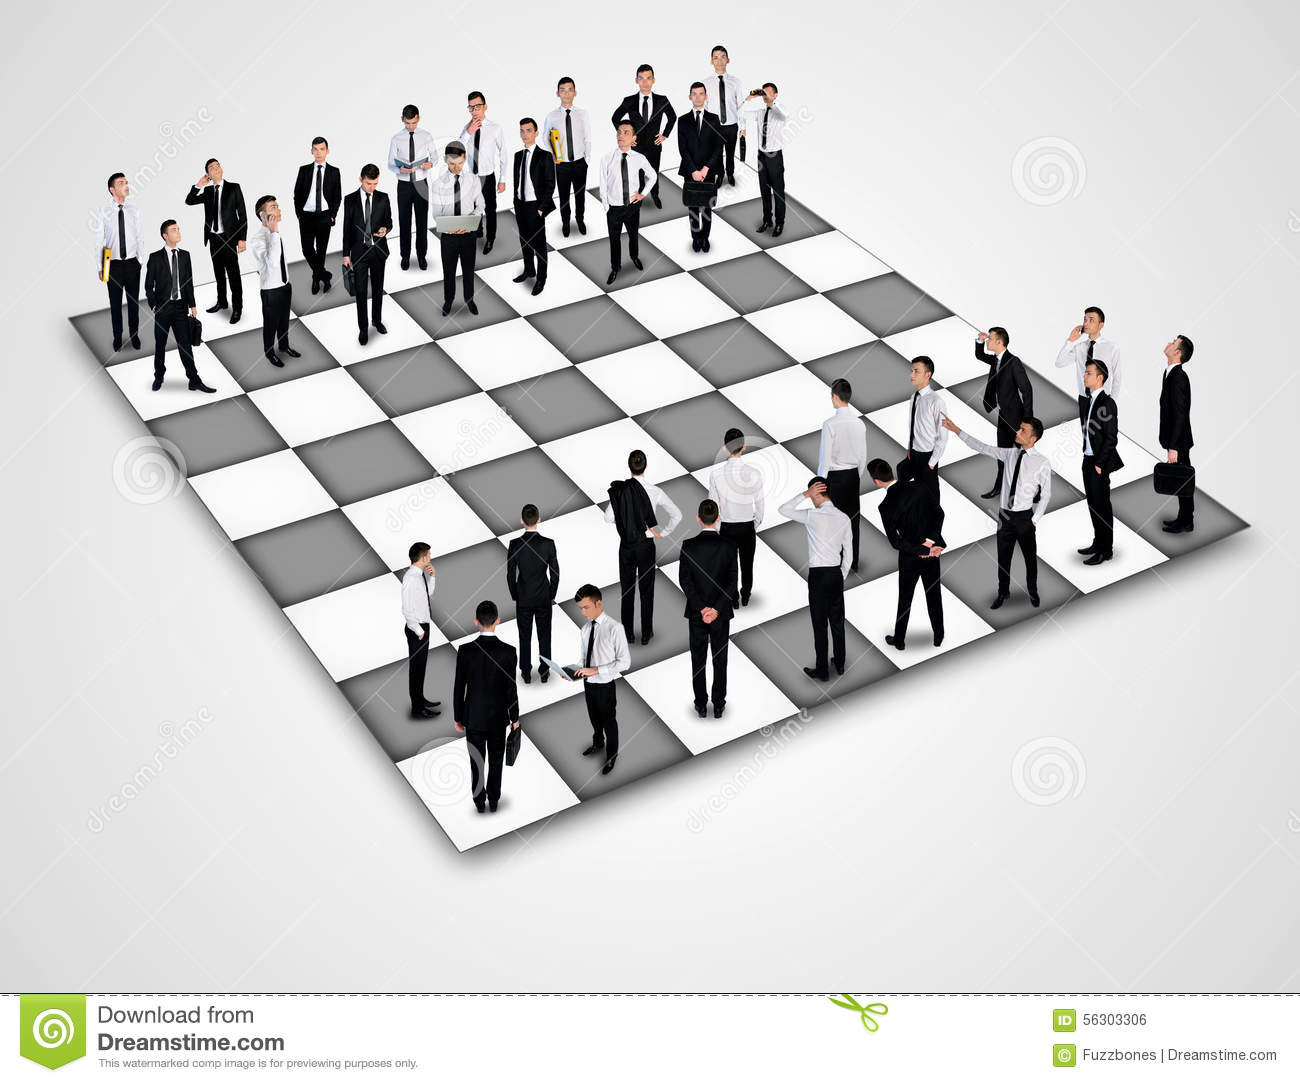 Success In Negotiations >> Chess board stock photo. Image of idea, career, business - 56303306